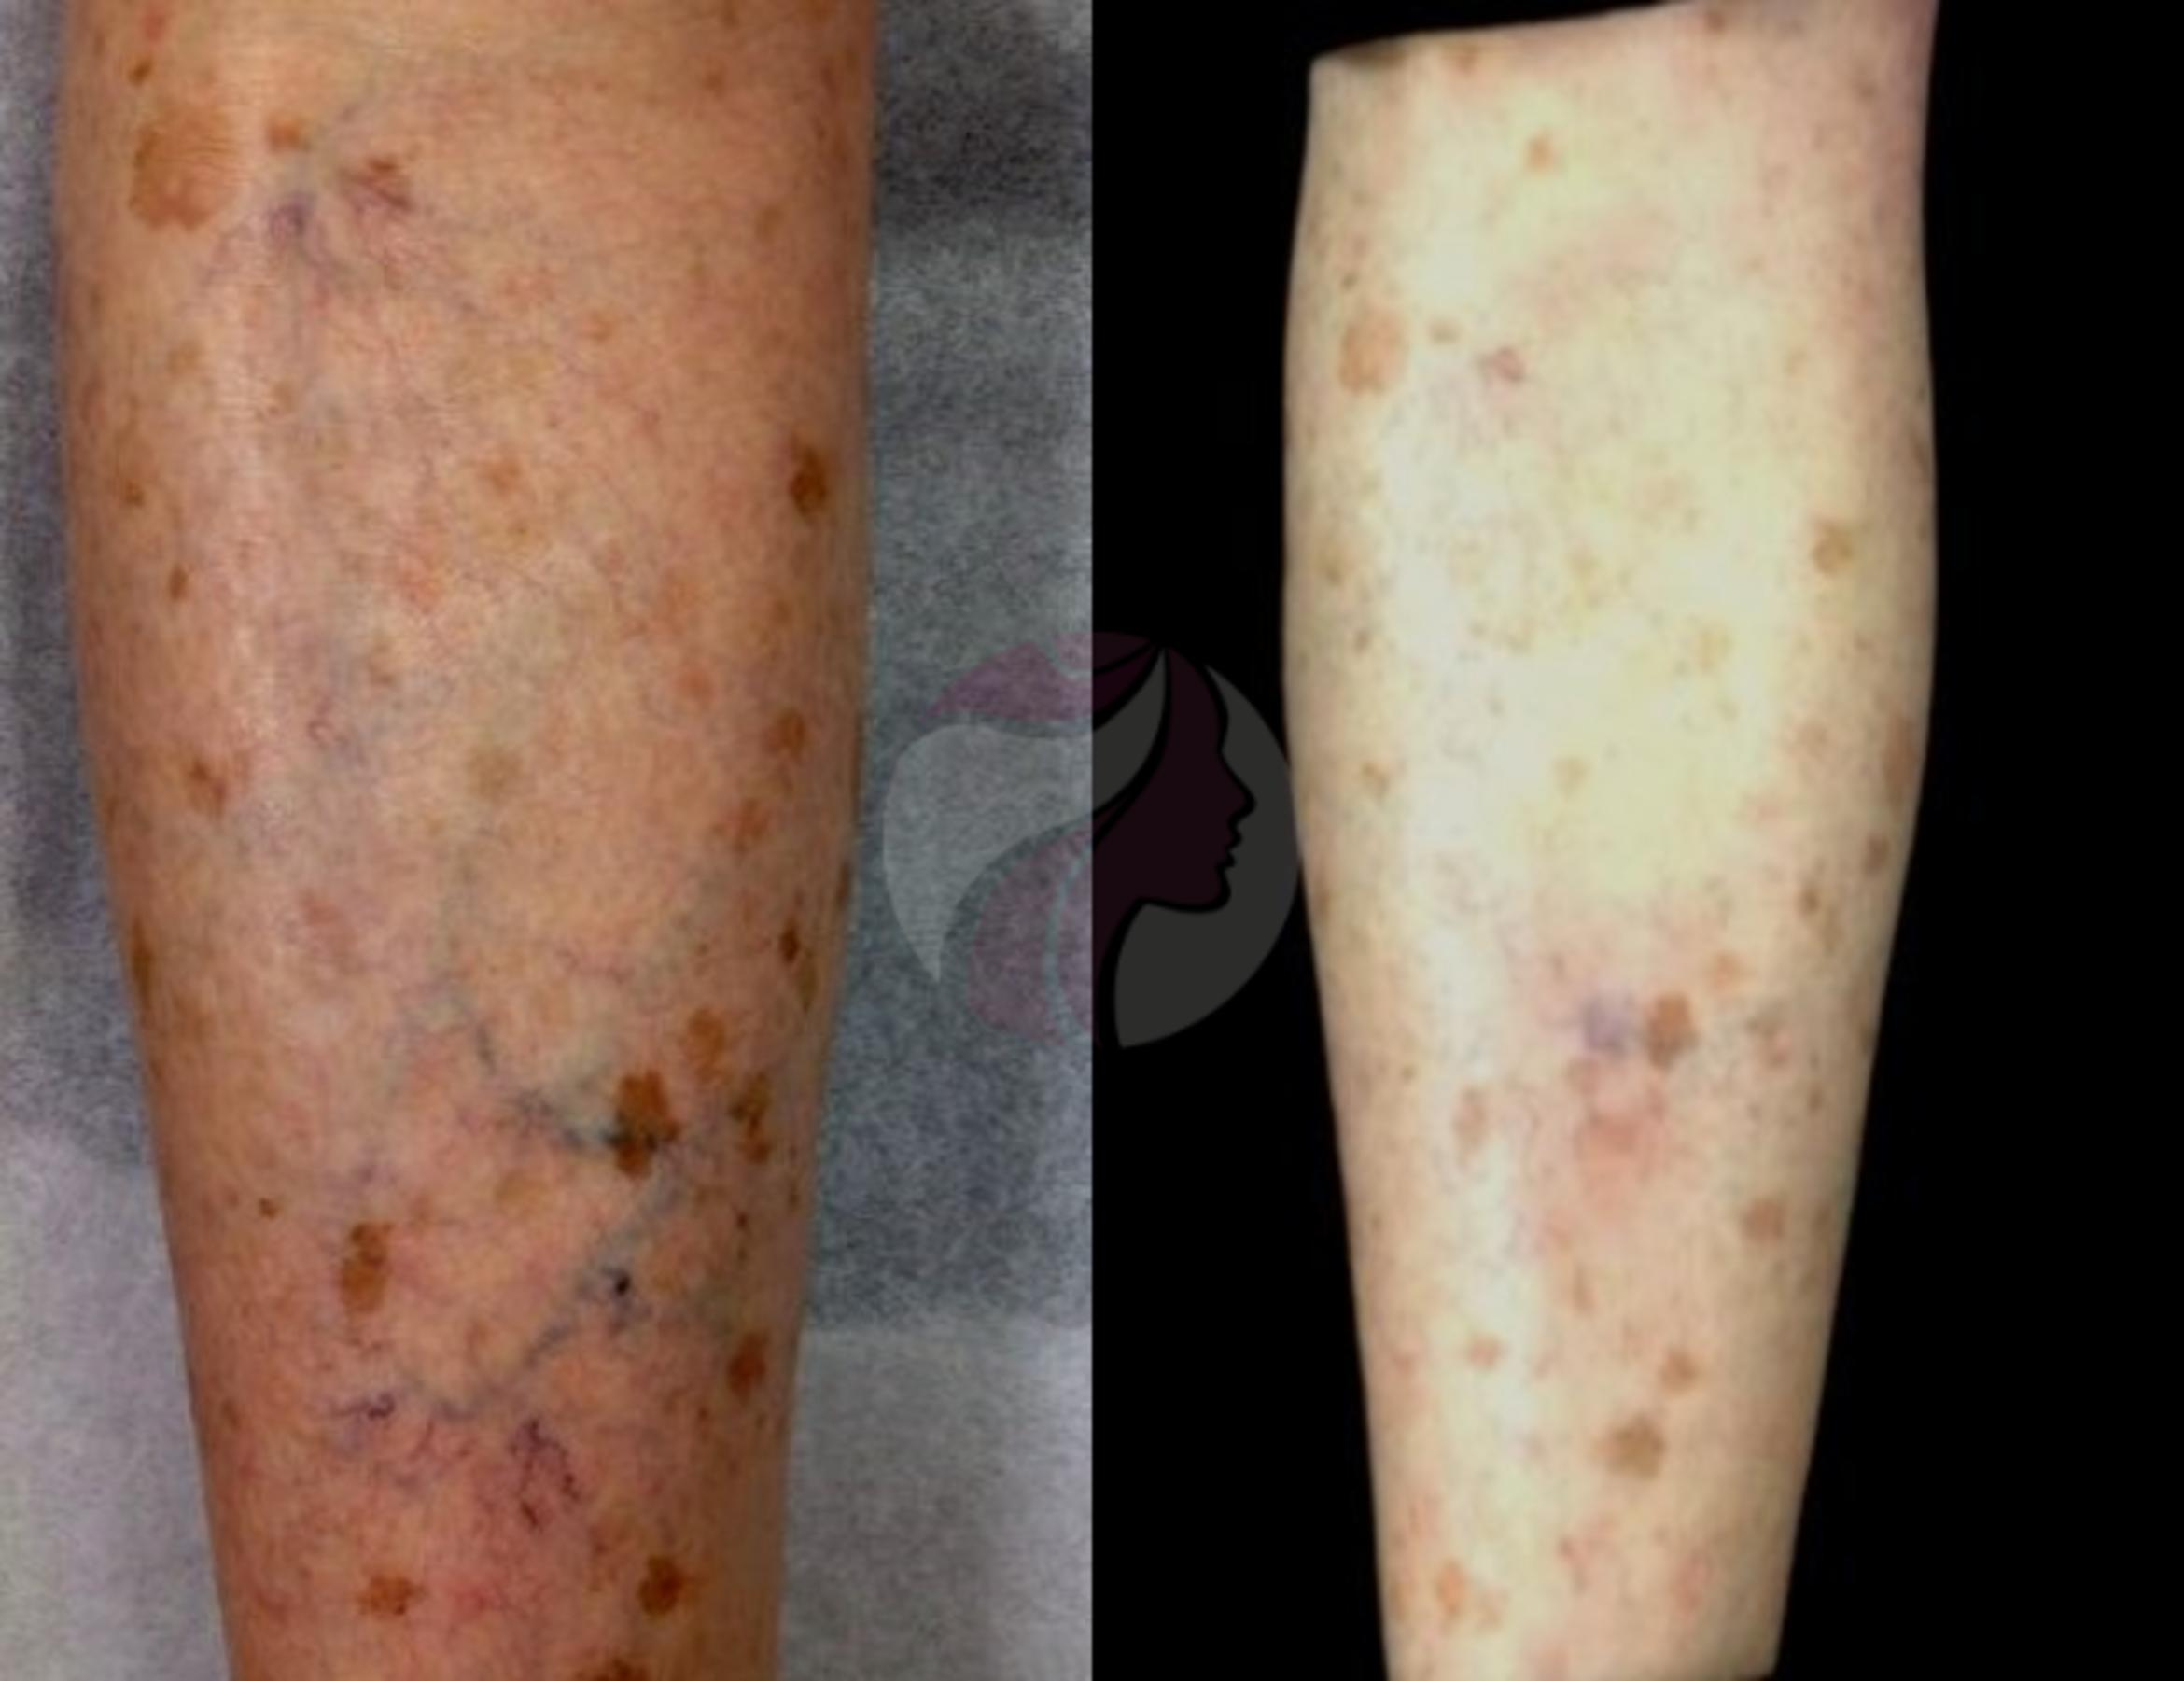 Sclerotherapy for Veins Case 61 Before & After View #1 | Dallas, TX | Dallas Center for Dermatology and Aesthetics